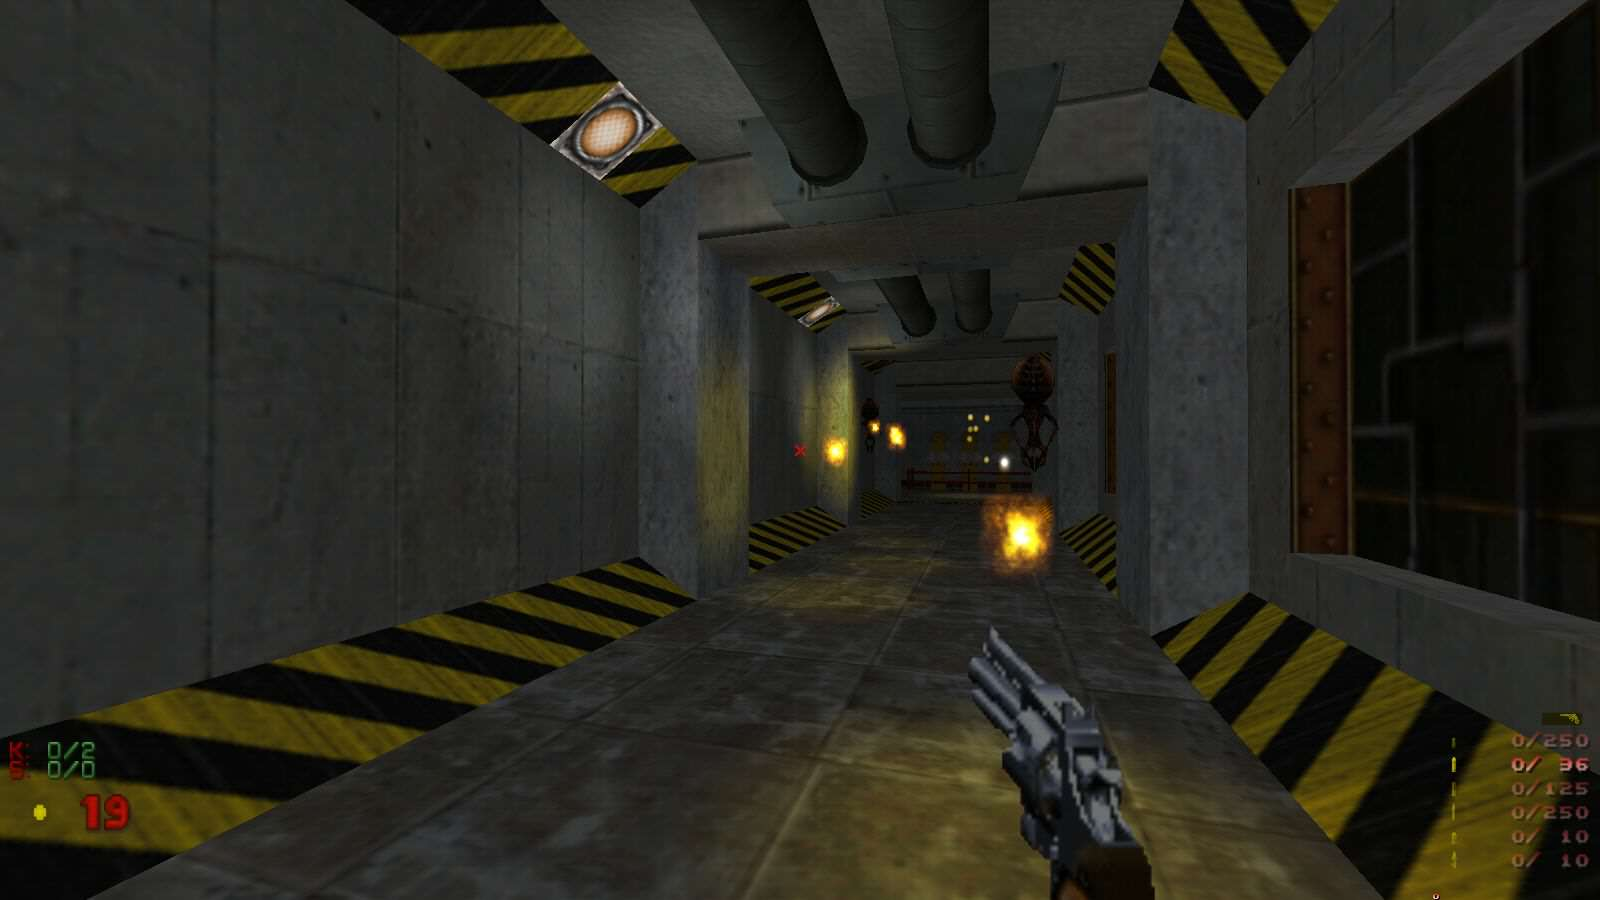 Half Life Recreated In DOOM Is Pretty Awesome PnoicMap16 02